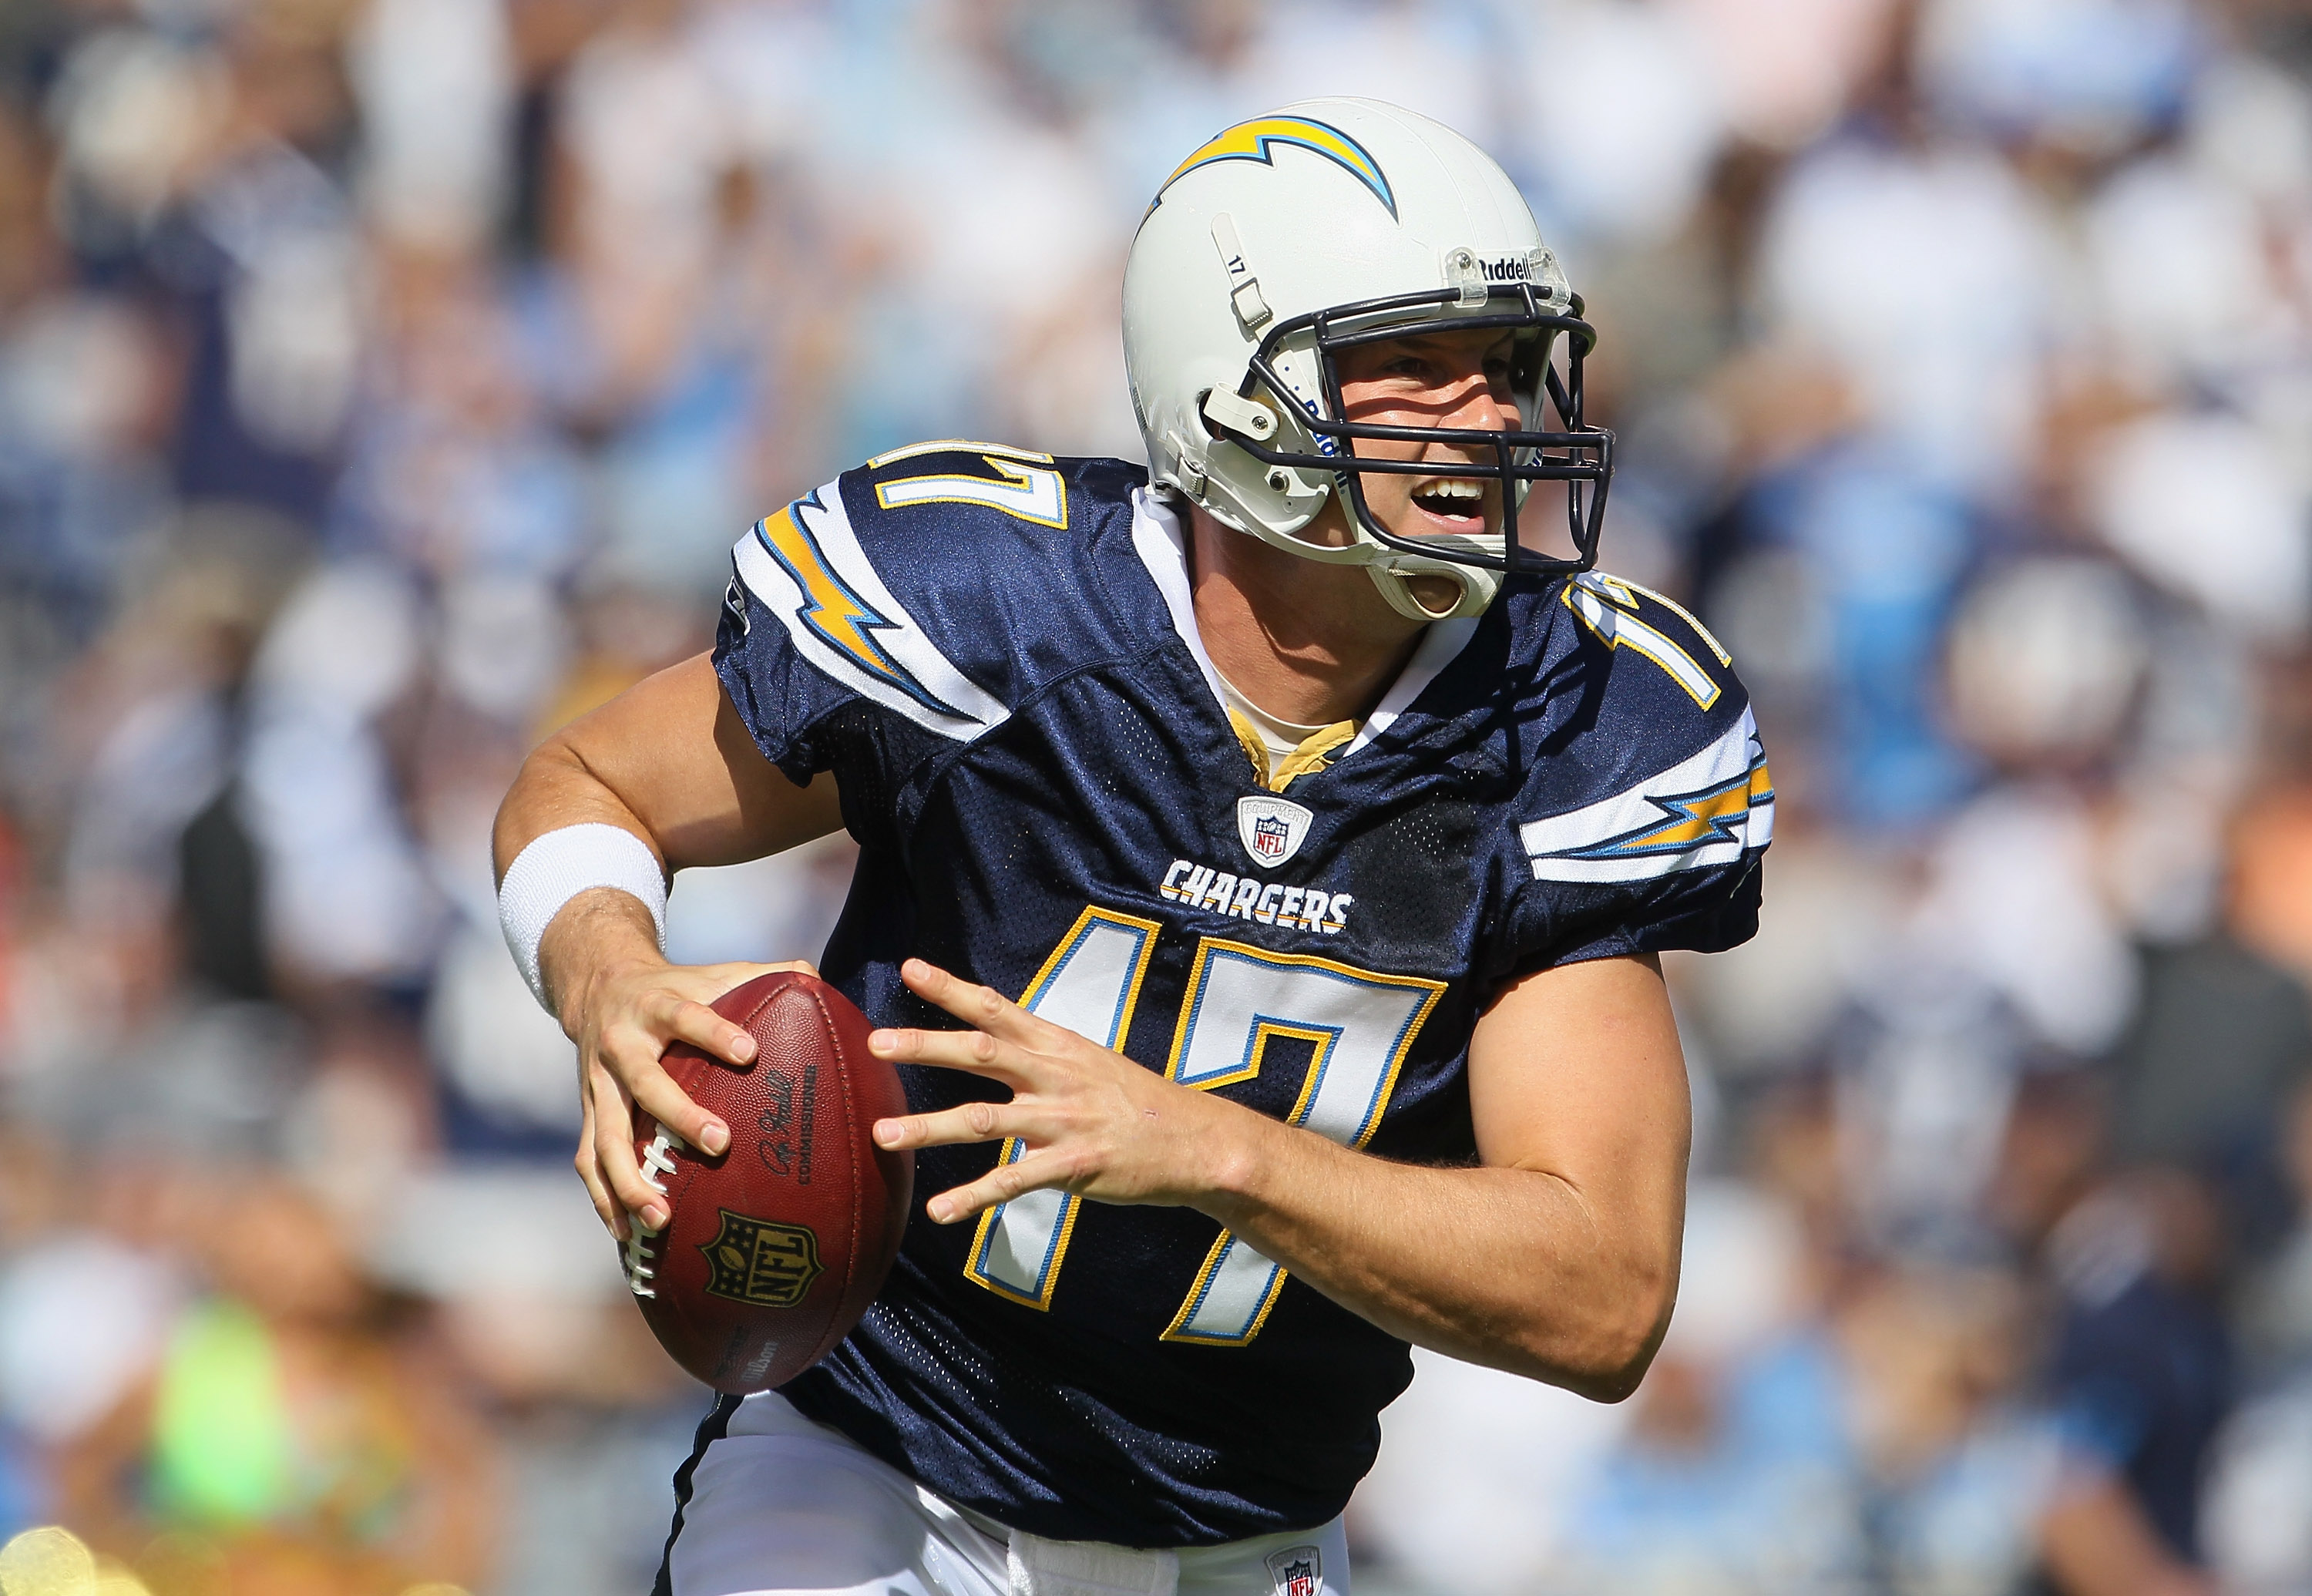 SAN DIEGO - OCTOBER 31:  Quarterback Philip Rivers #17 of the San Diego Chargers looks down field for an open receiver against the Tennessee Titans in the first quarter at Qualcomm Stadium on October 31, 2010 in San Diego, California. The Chargers defeate